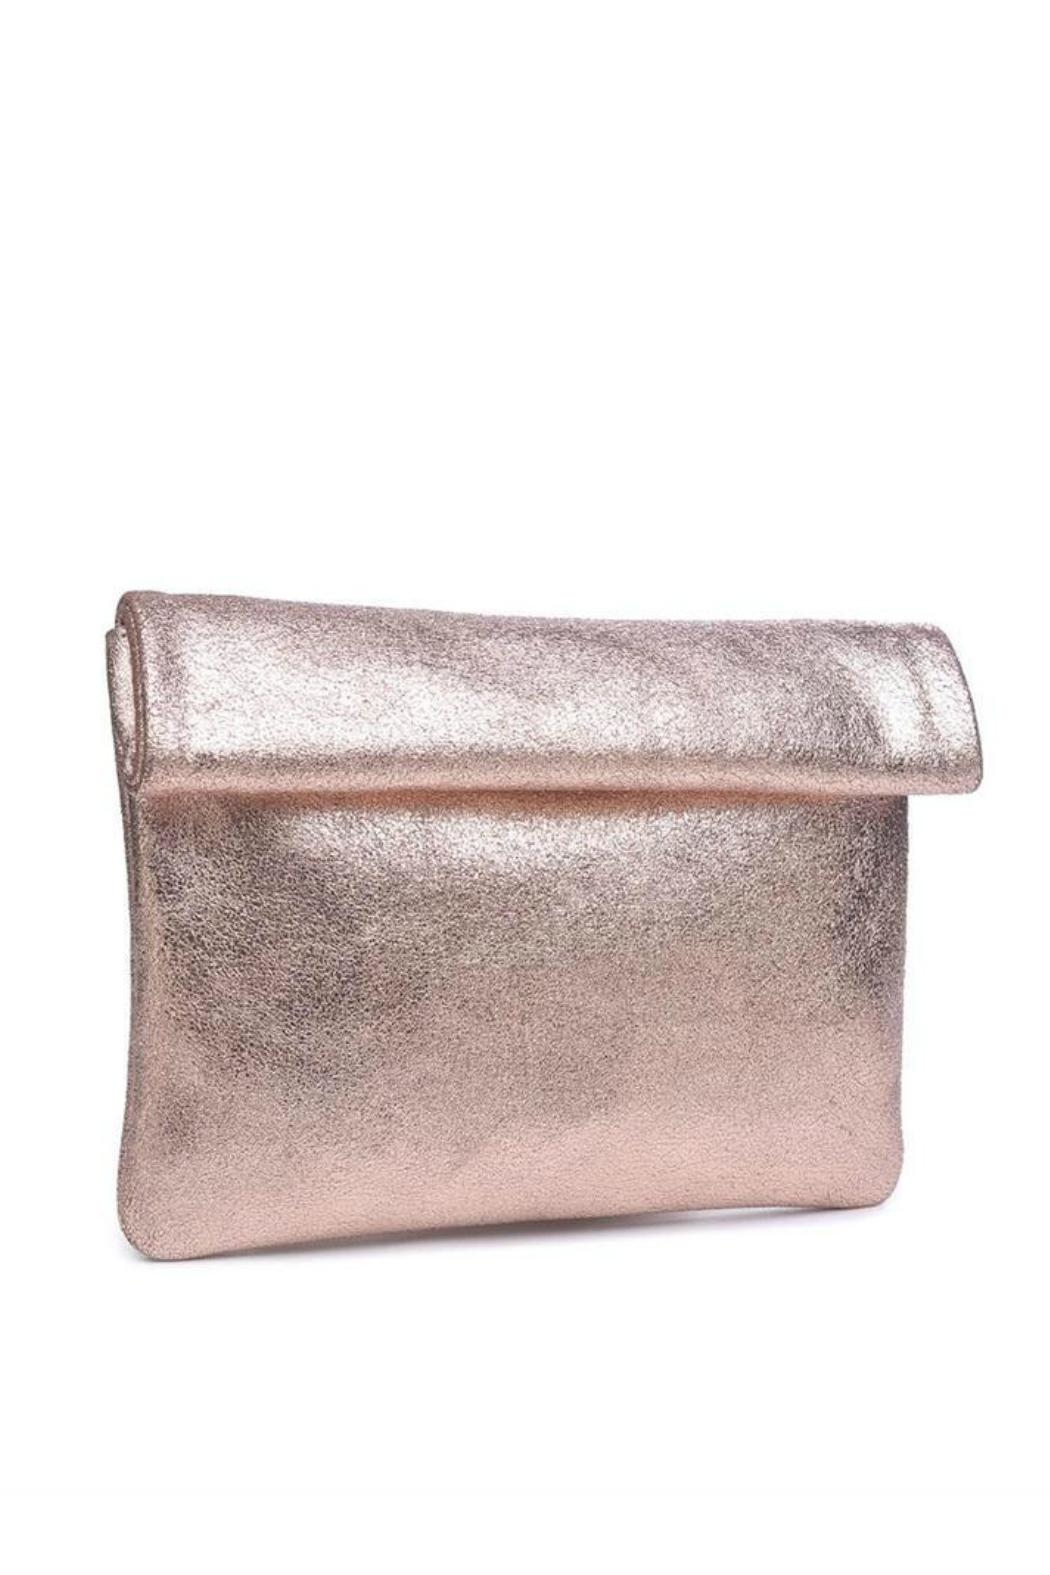 Moda Luxe Gianna Metallic-Leather Clutch - Front Full Image